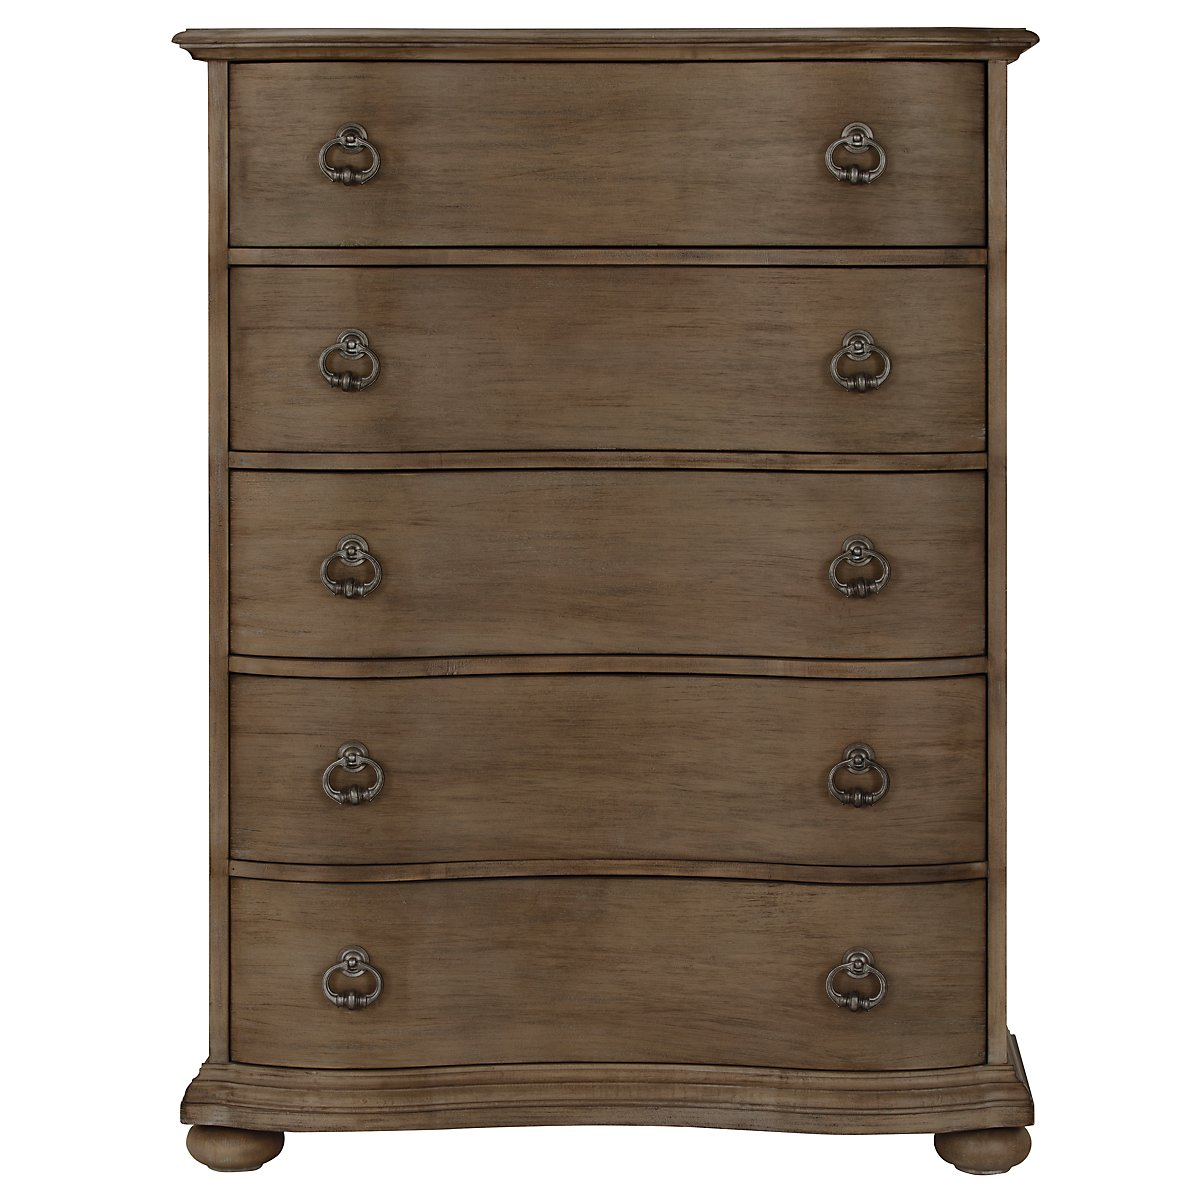 Haddie Light Tone Drawer Chest